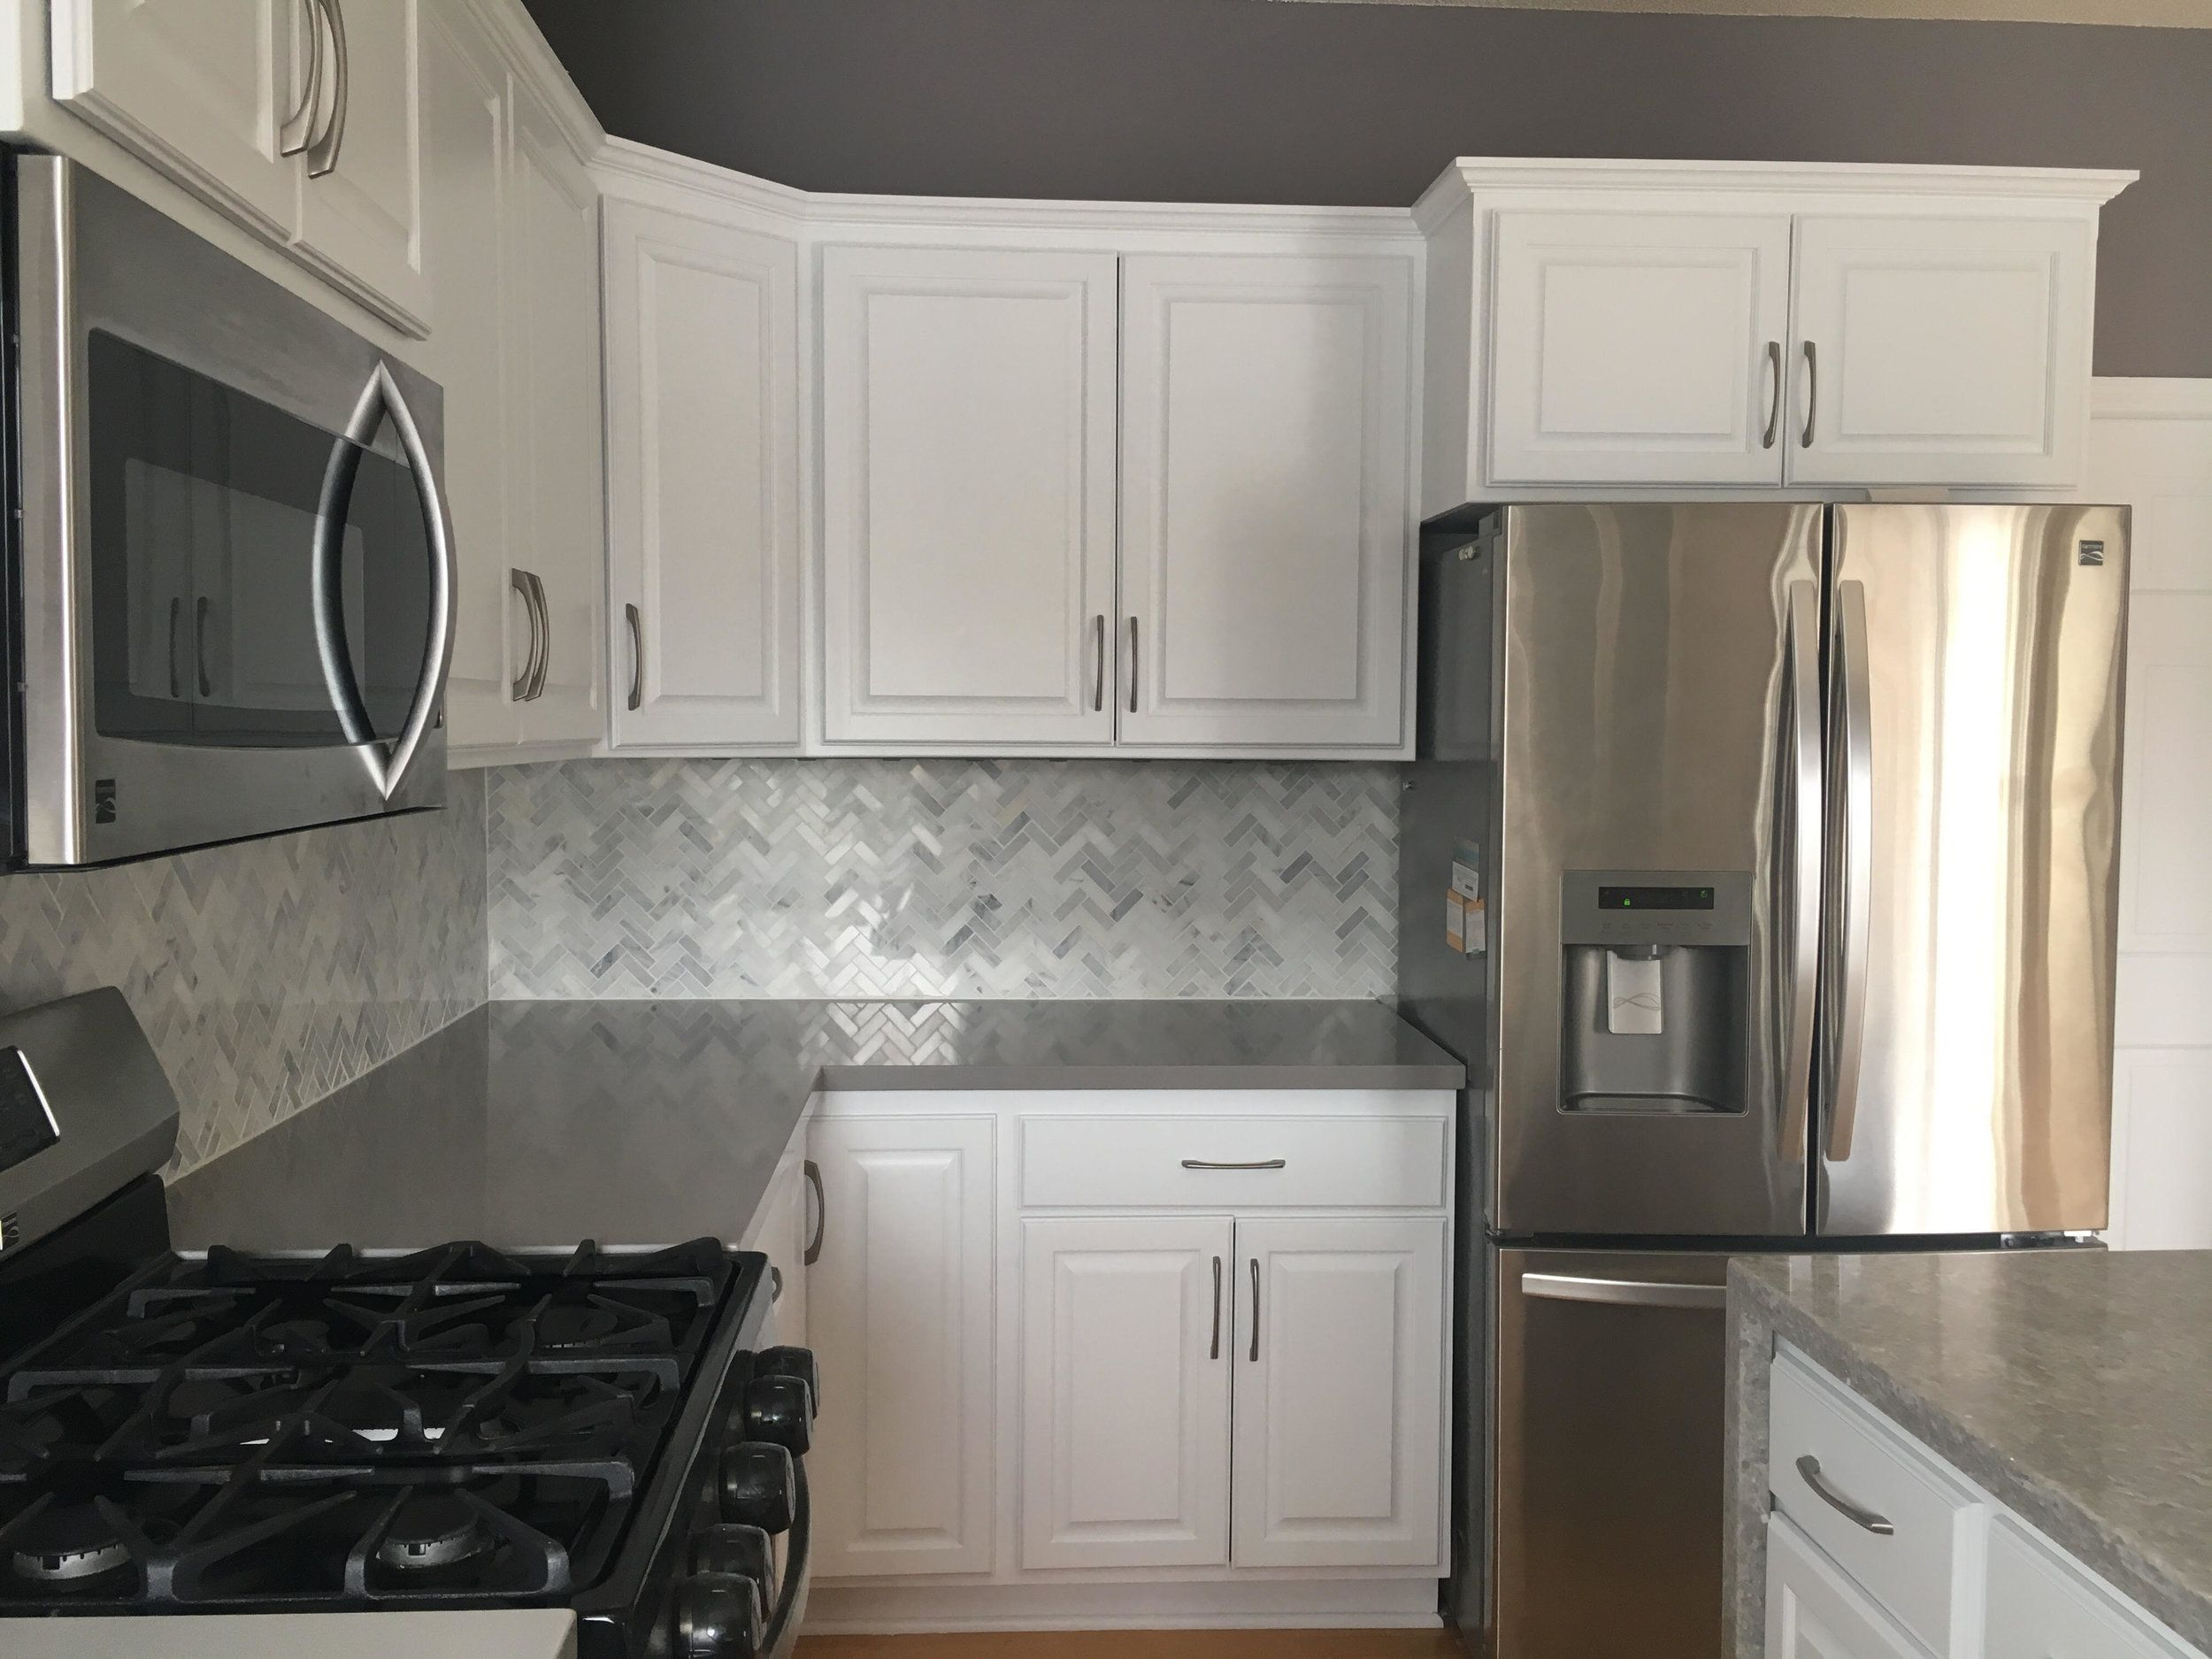 Kitchen Cabinet Refacing Project Maple Grove Mn Refacing Kitchen Cabinets Refinishing Cabinets Cabinet Refacing